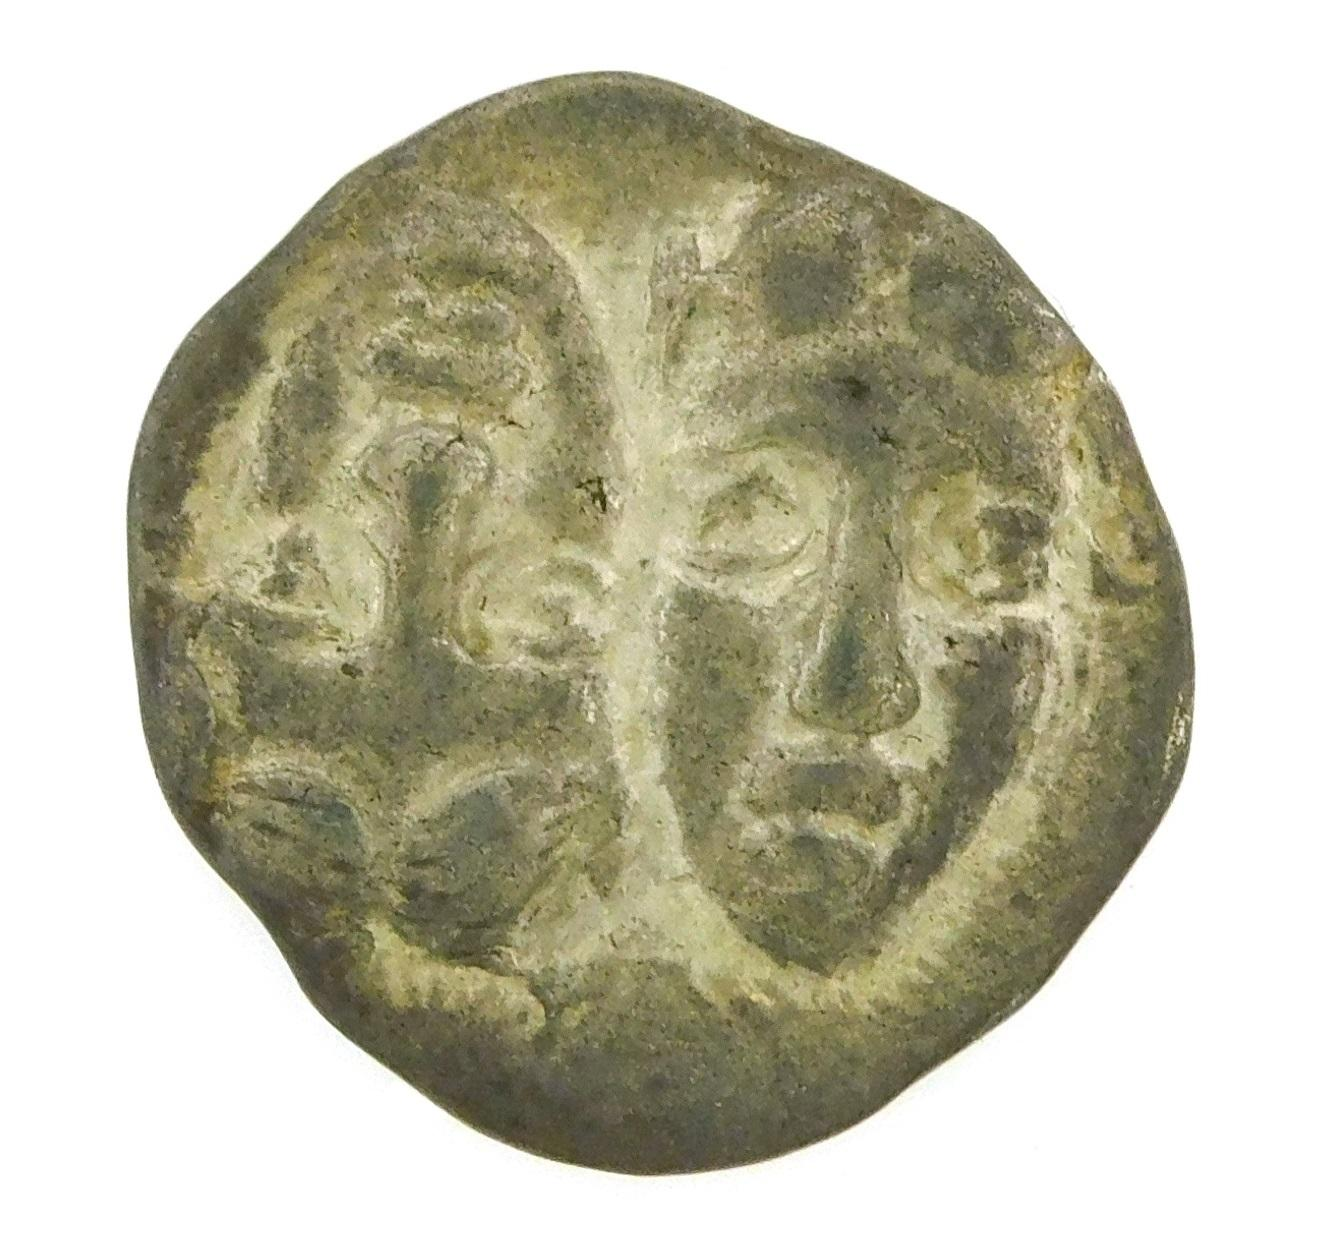 COIN: Ancient Greece Thrace Istros. Circa 313-280 BC, AR Drachm. Two heads side by side, Sea Eagle and Dolphin. EF. 4.12 Grams, 18.5...